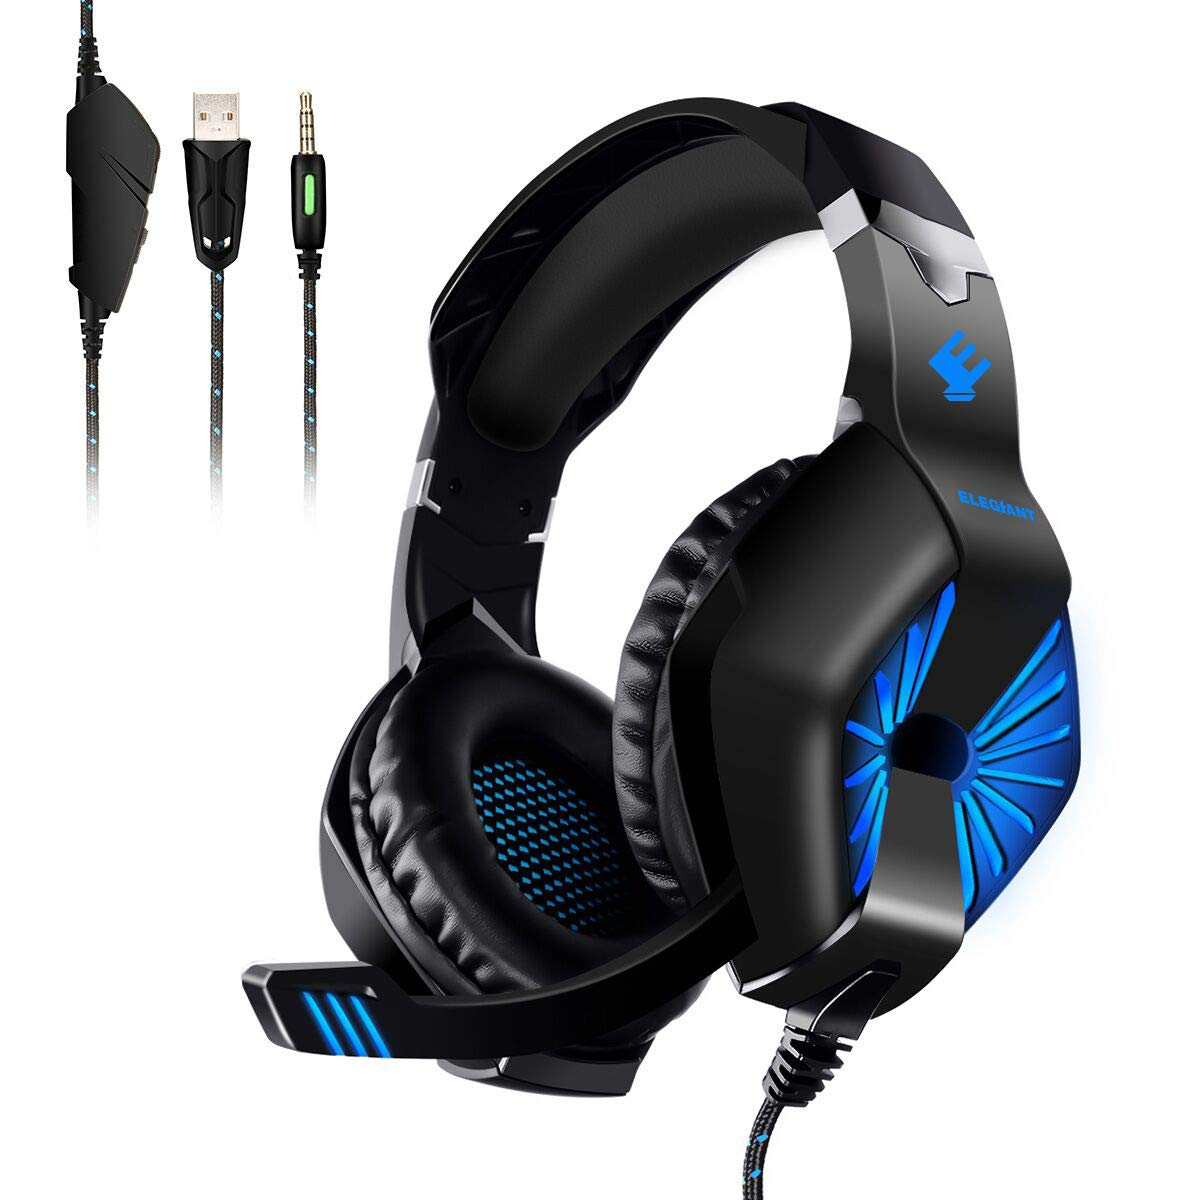 PC Gaming Headset, ELEGIANT ODDGOD Over Ear Computer Headphones with Mic, LED Lights Bass Stereo Surround Sound Volume Control, Compatible with PS4 Xbox One Pro PC Nintendo Switch Smartphone Laptop